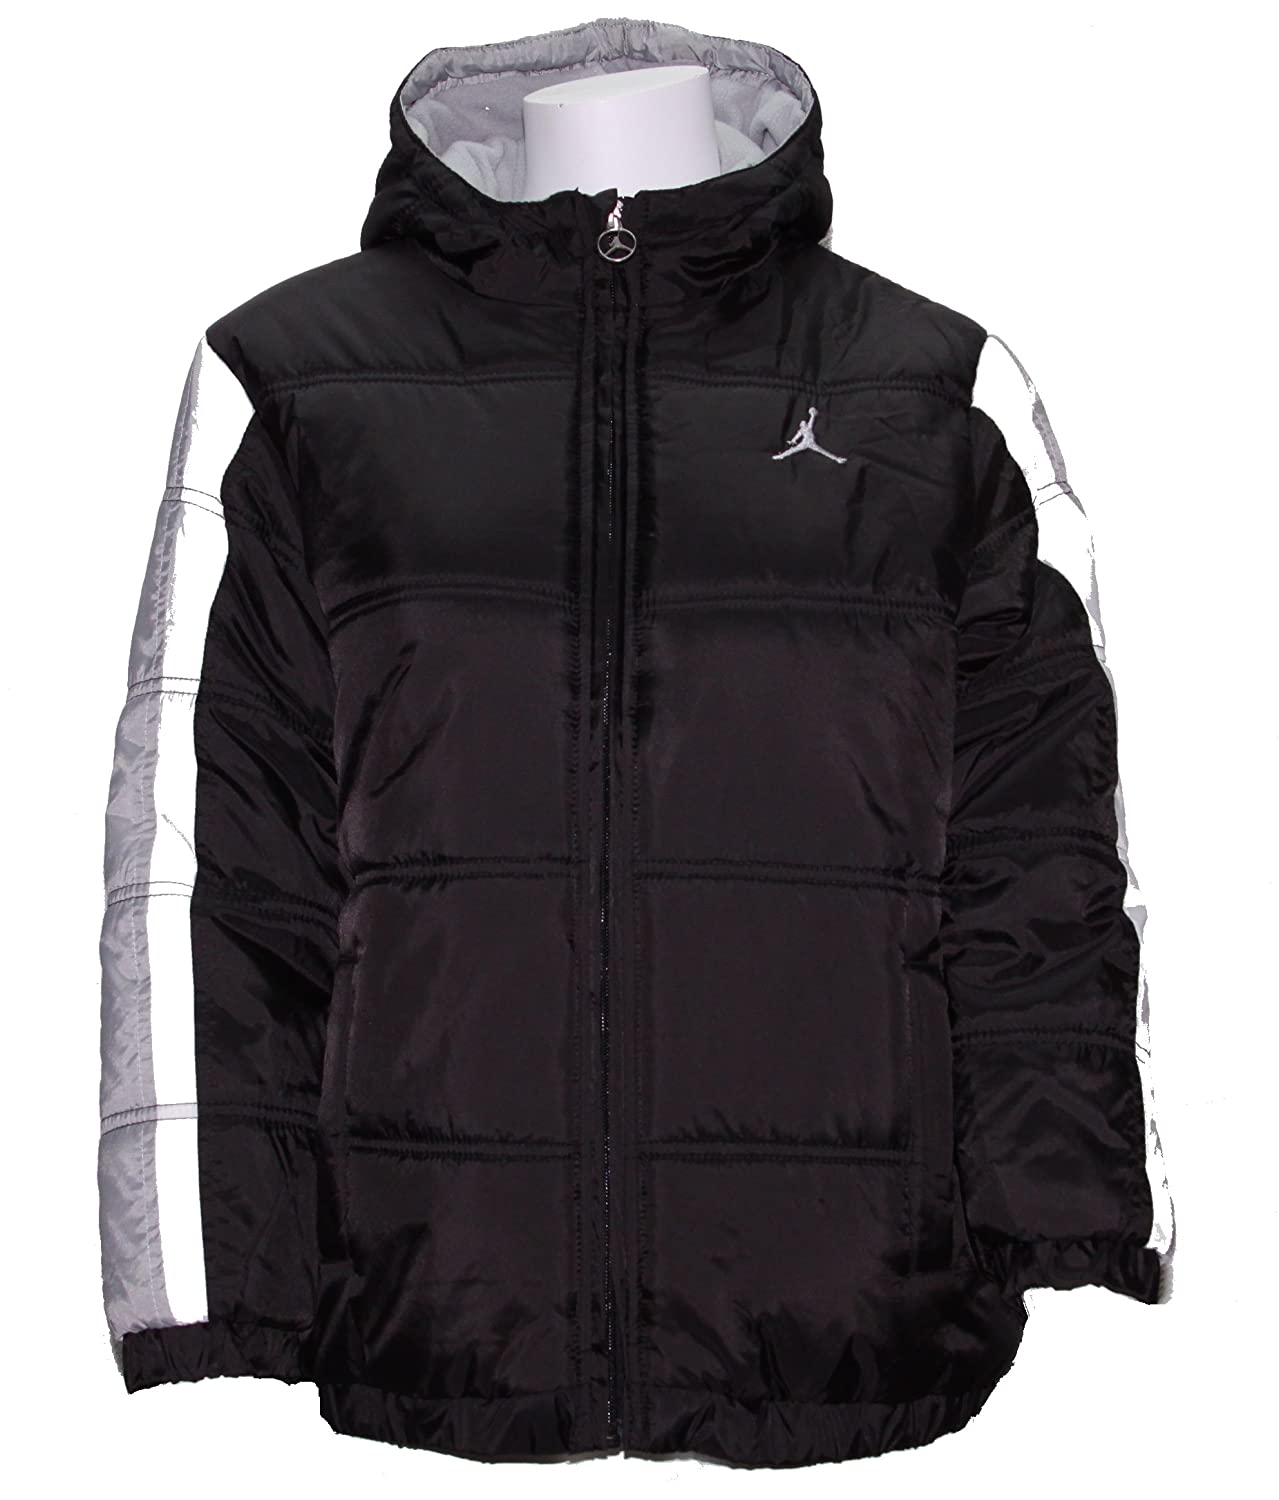 209d8a1f8887 Top 10 wholesale Nike Hooded Jacket - Chinabrands.com